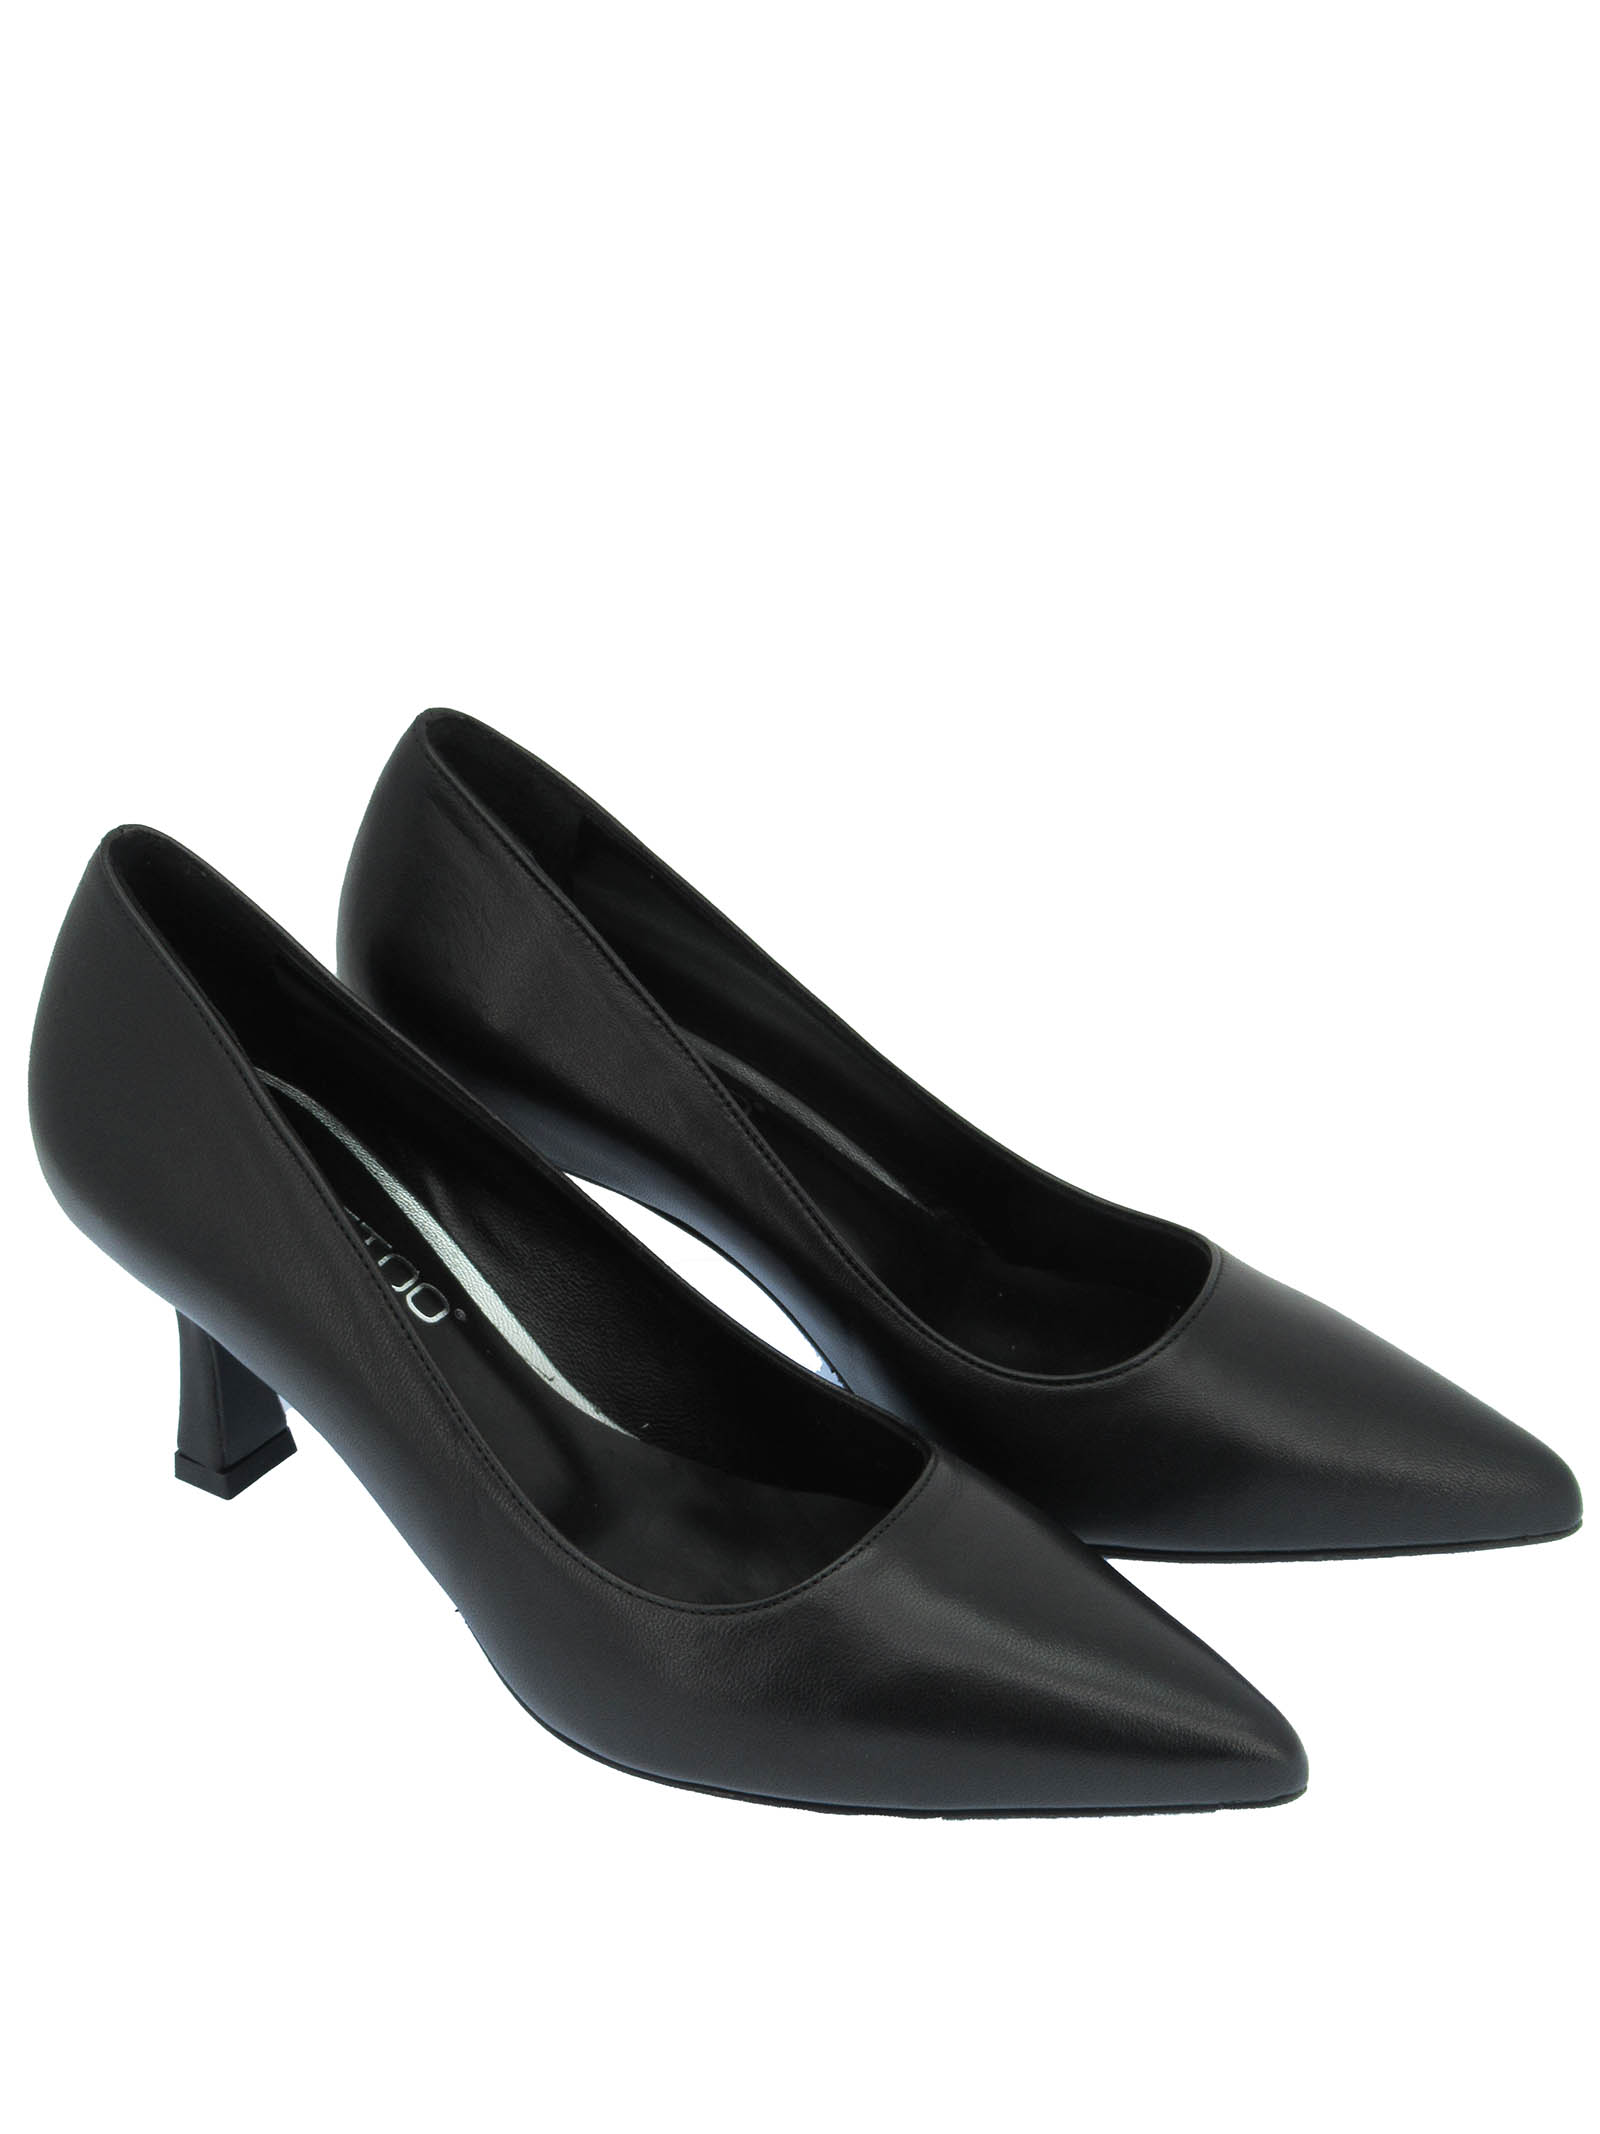 Women's Shoes Décolleté in Black Leather with Pointed Toe and High Heel Tattoo   Pumps   A 74001